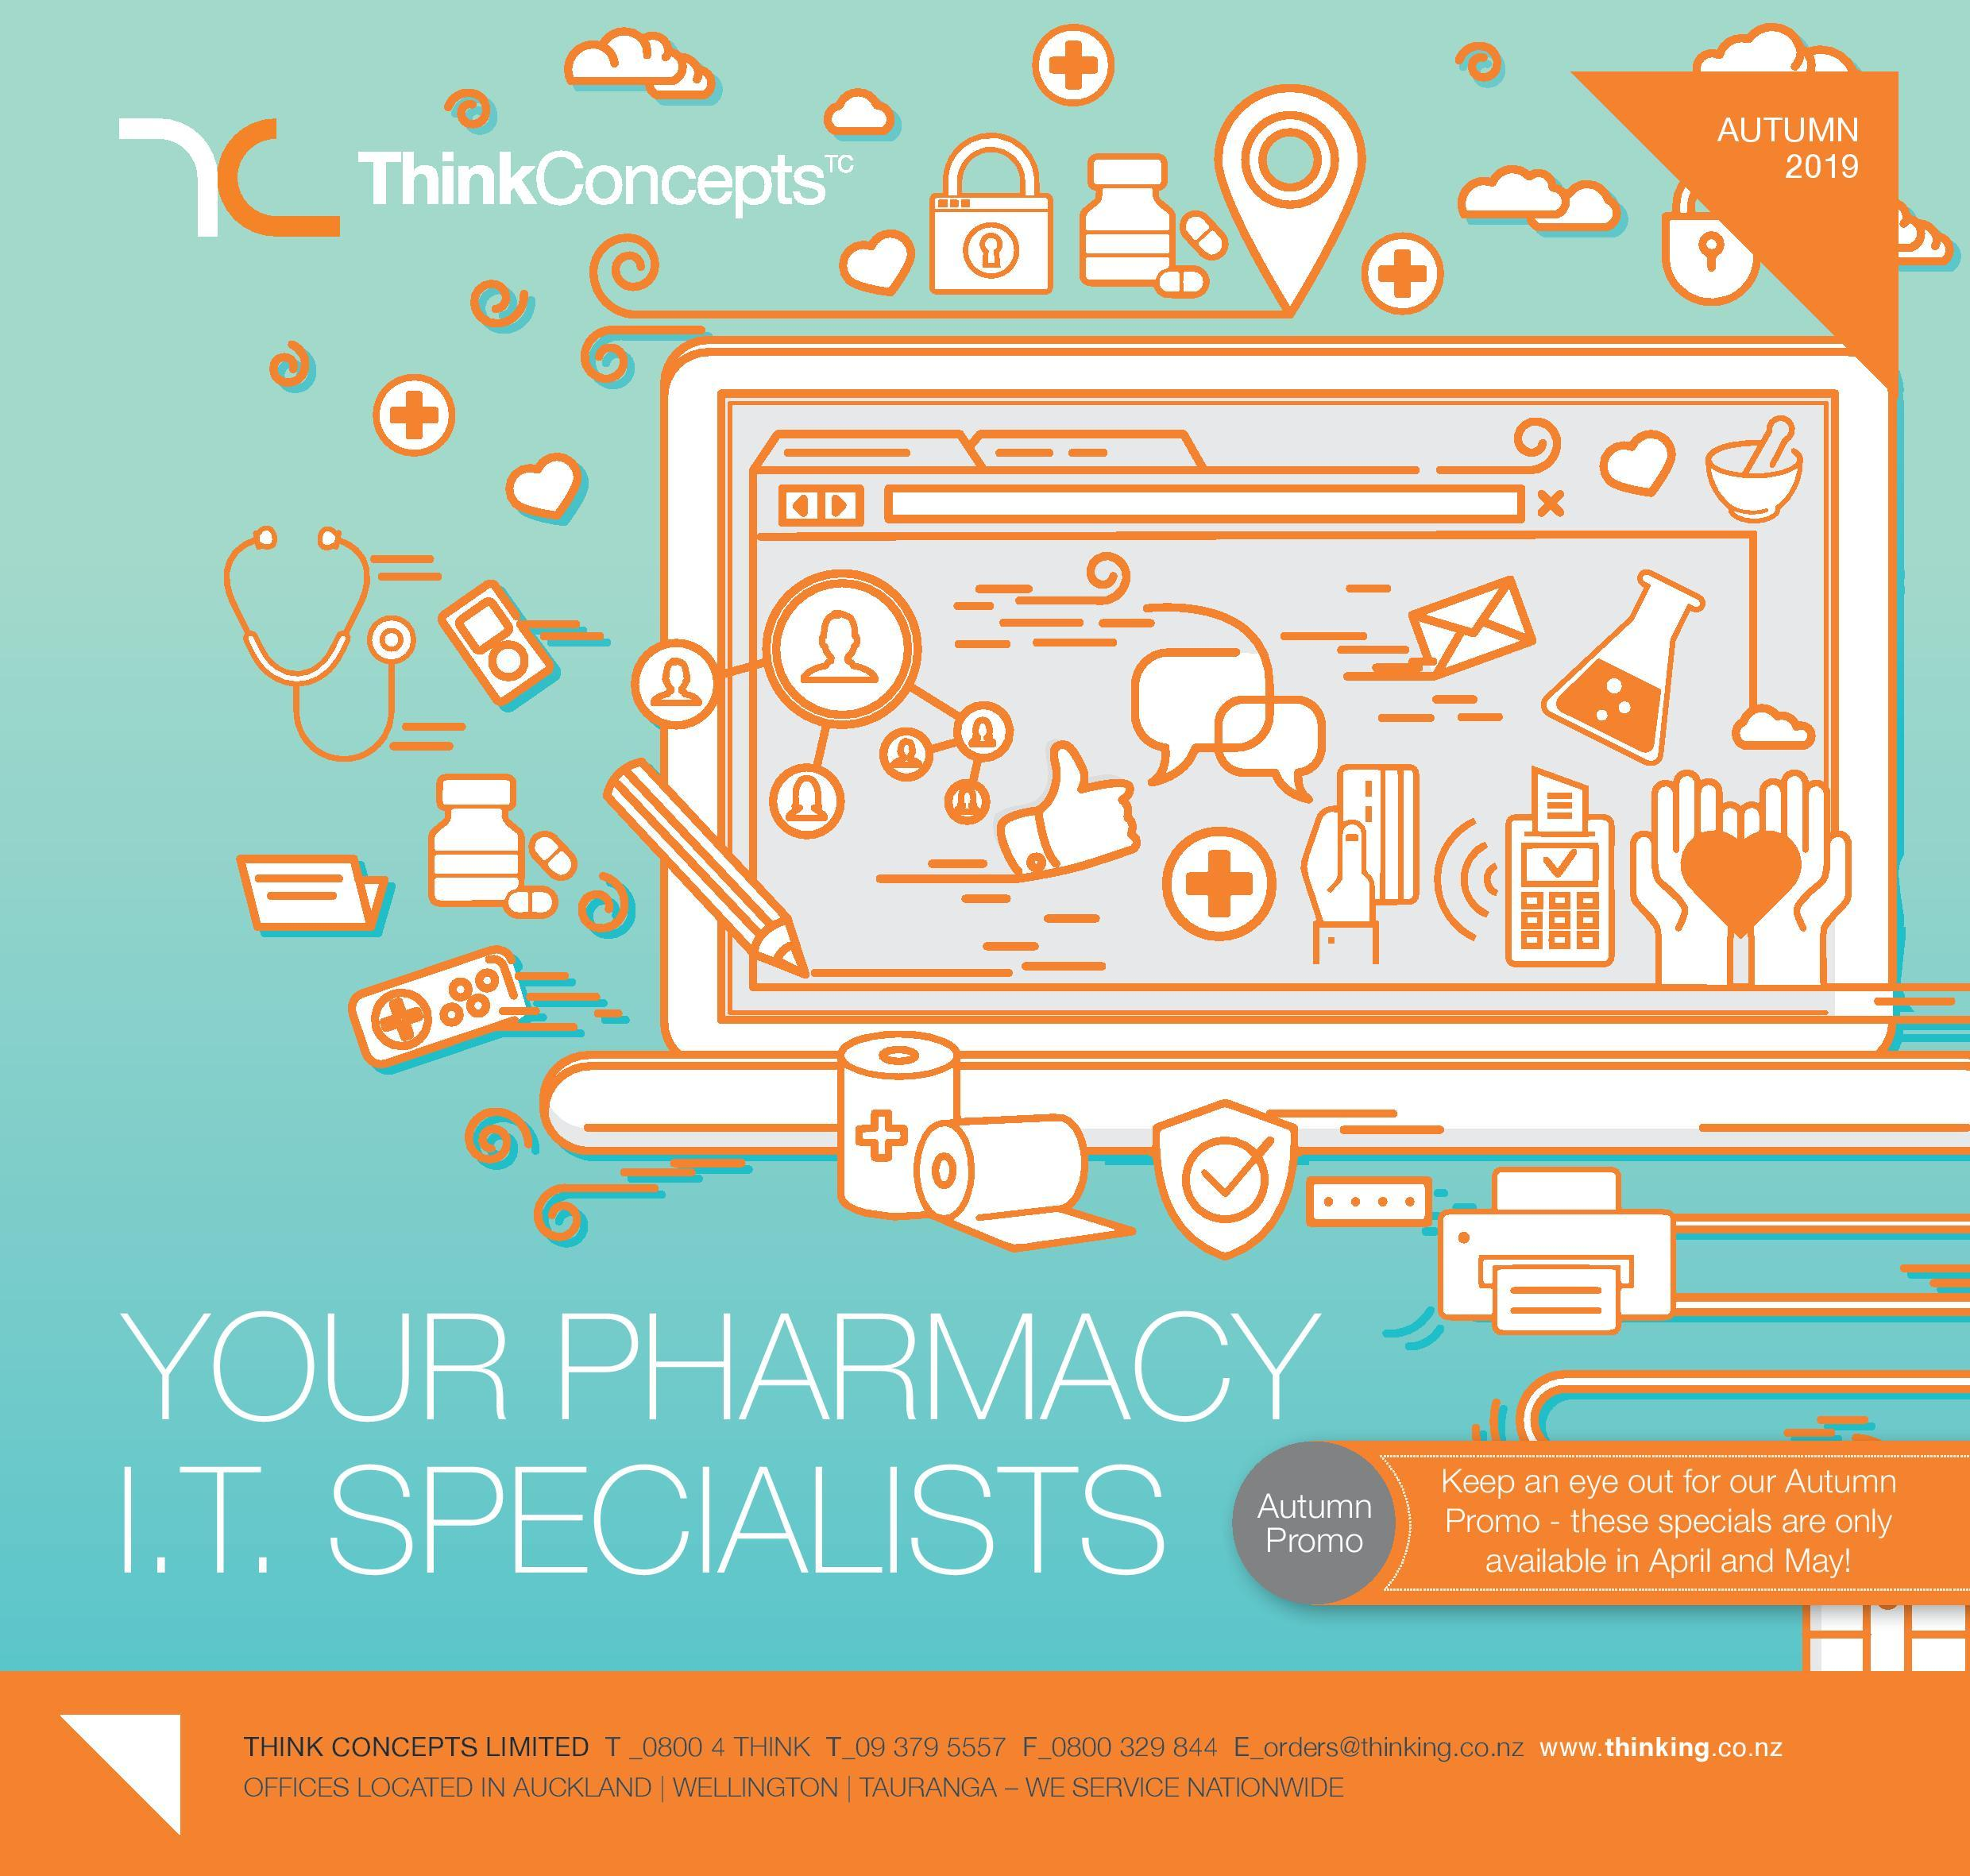 Think Concepts: Your Pharmacy I.T. Specialists